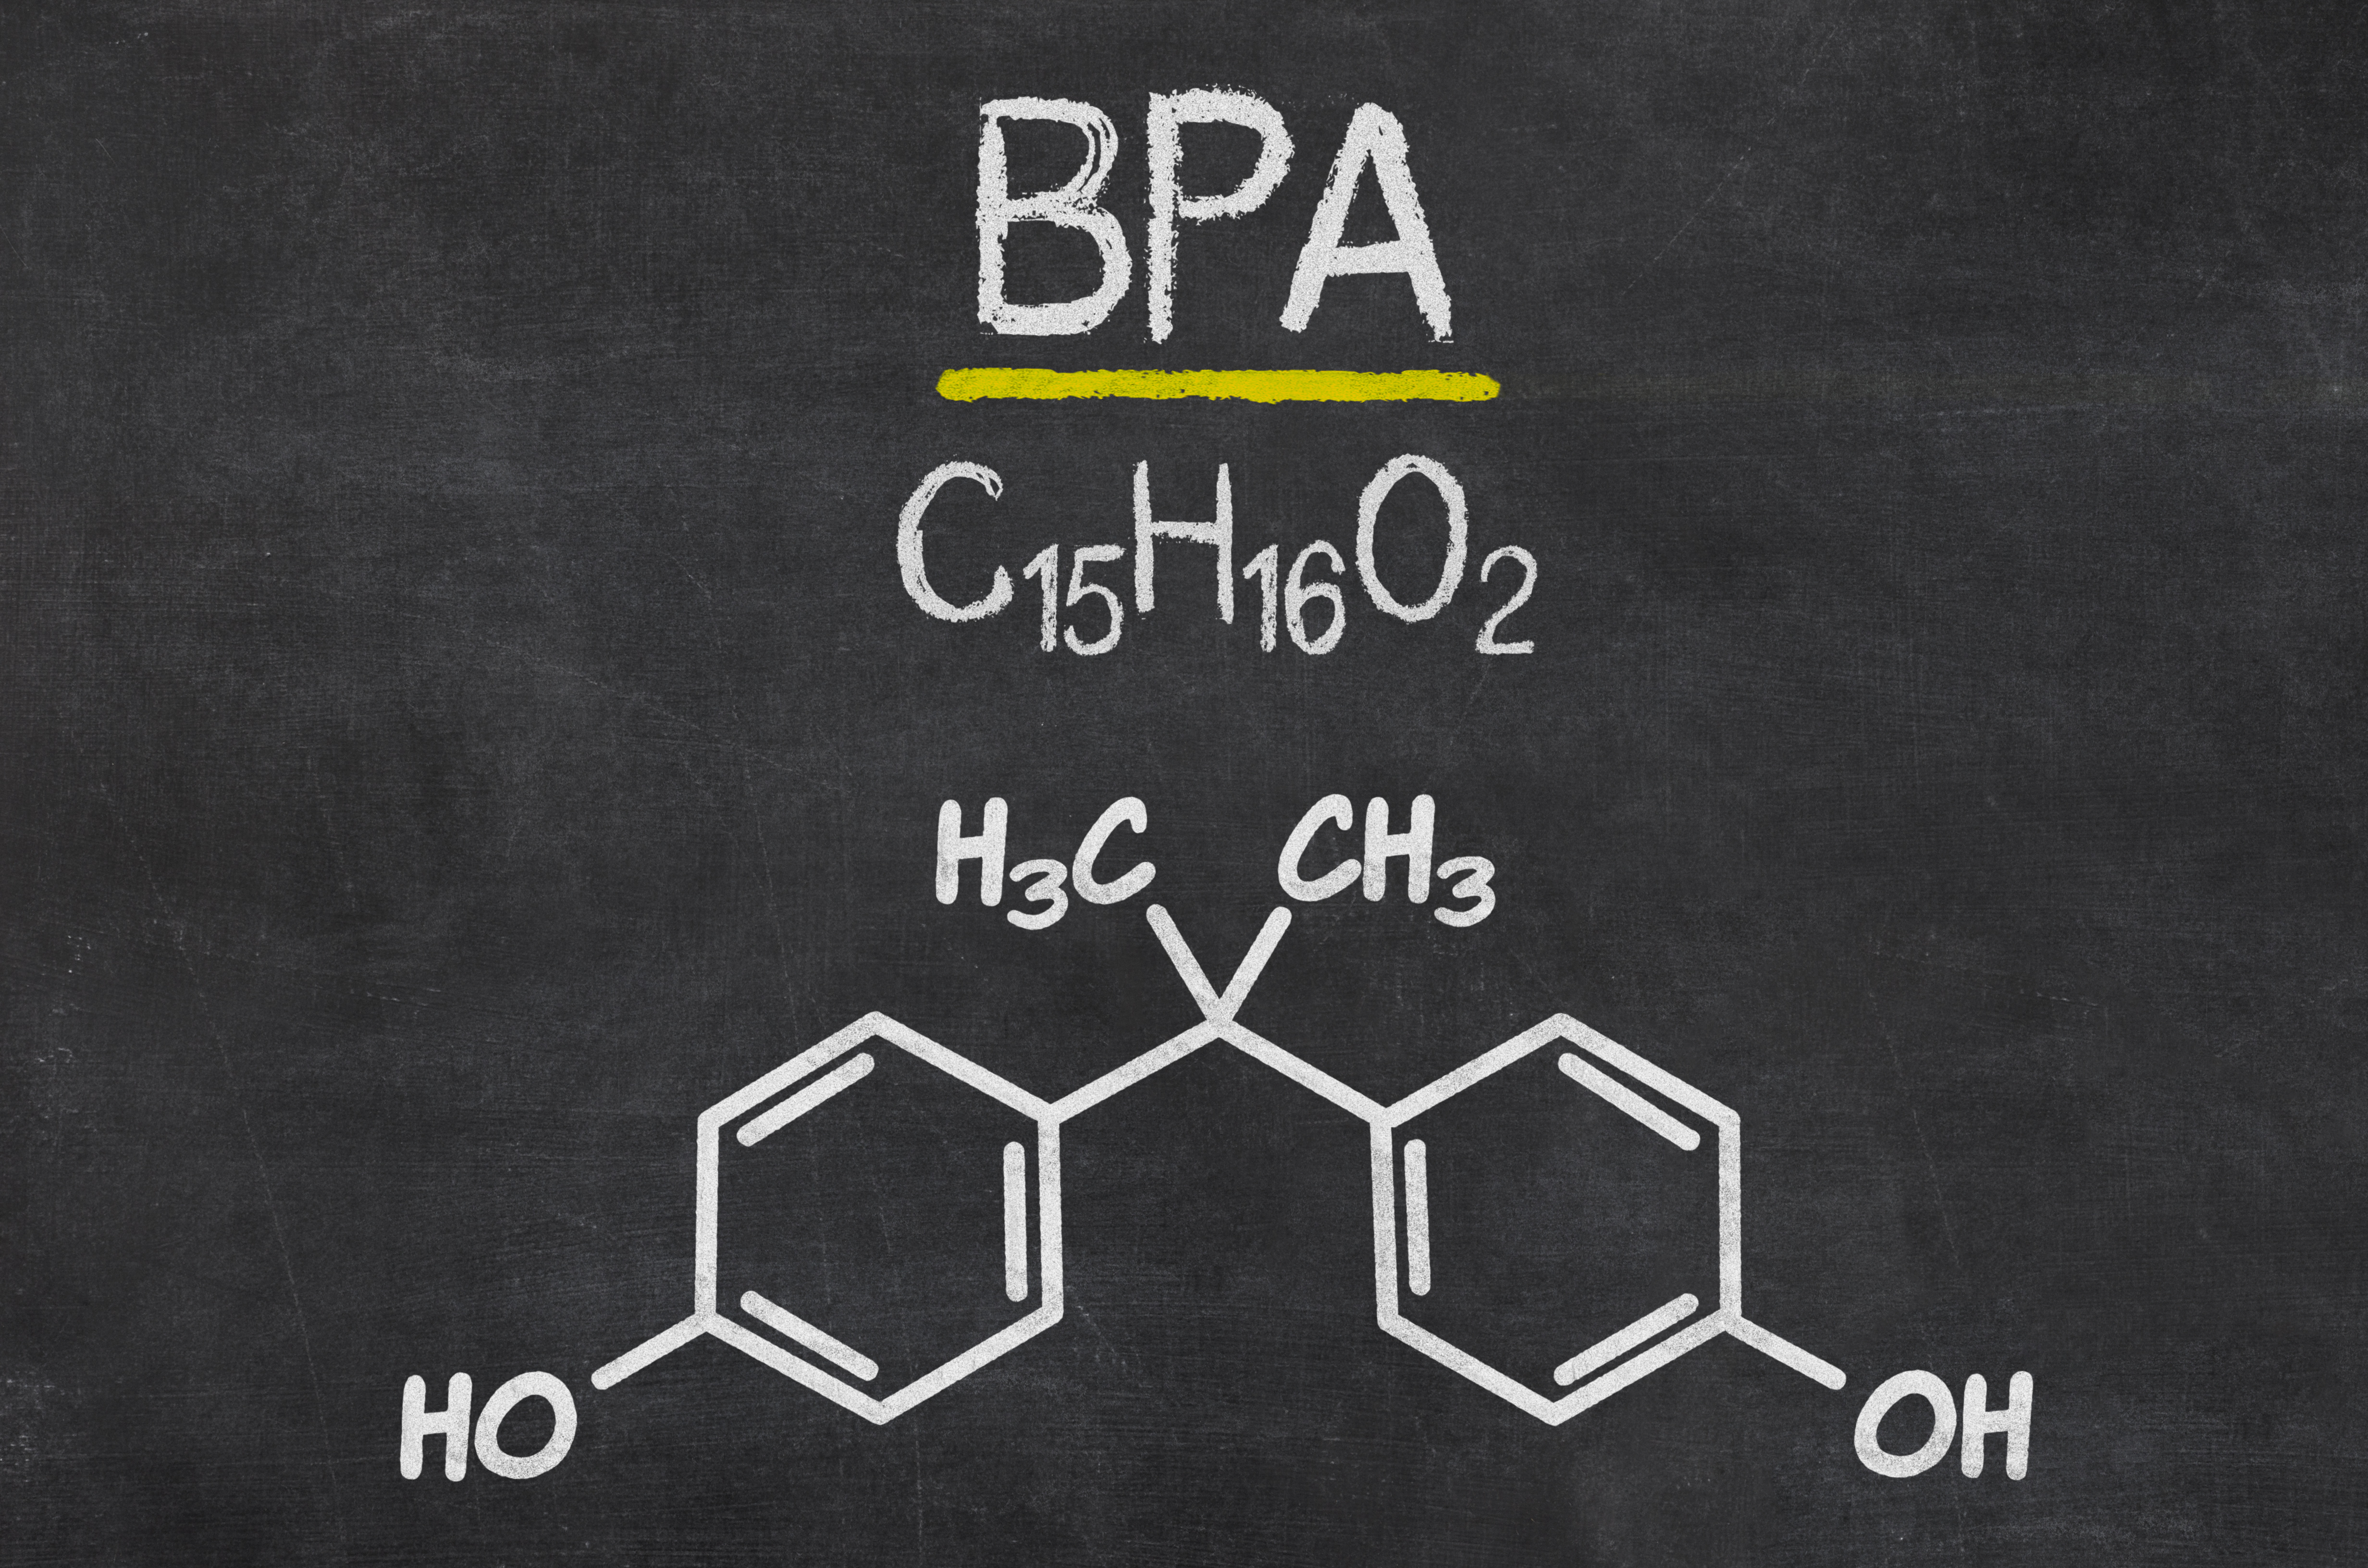 Safety First: What's the Deal with BPA?